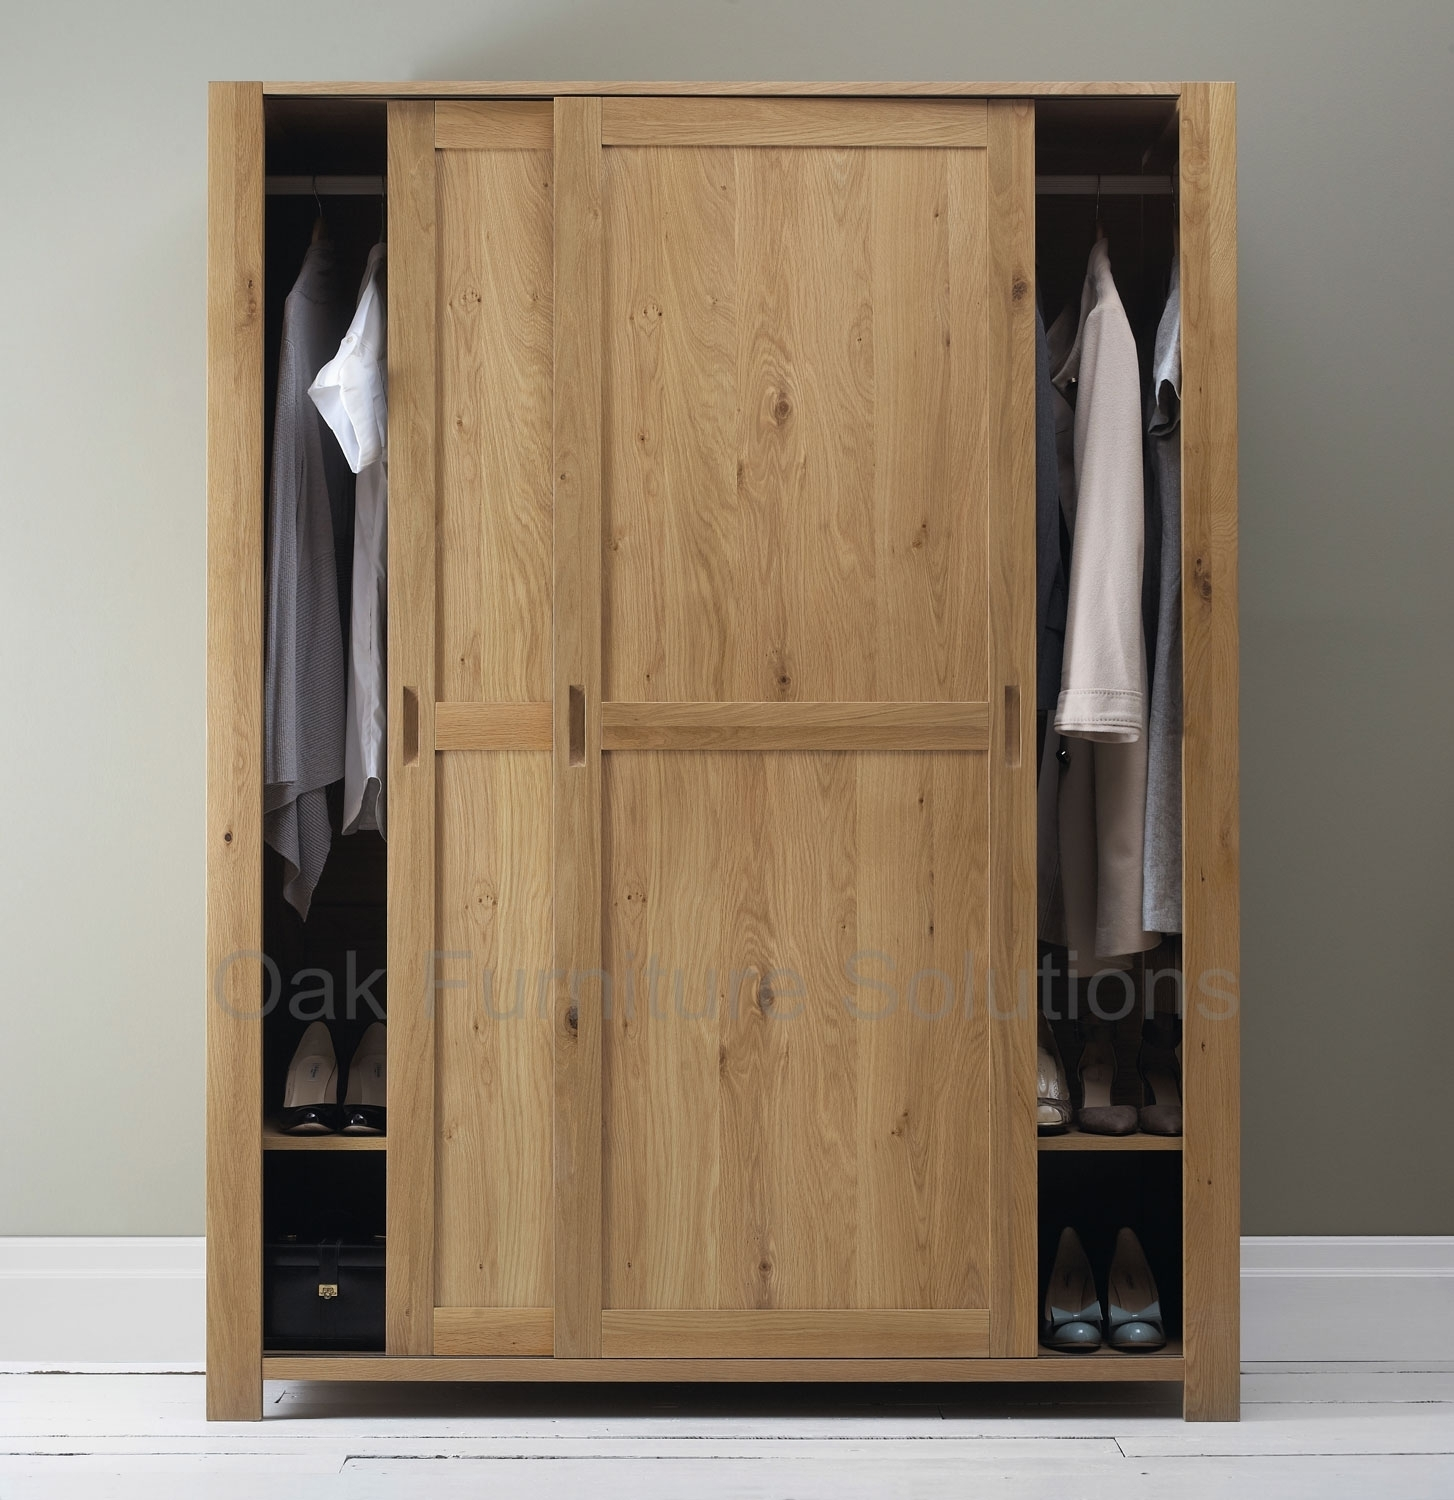 Oak Finish Sliding Closet Doors